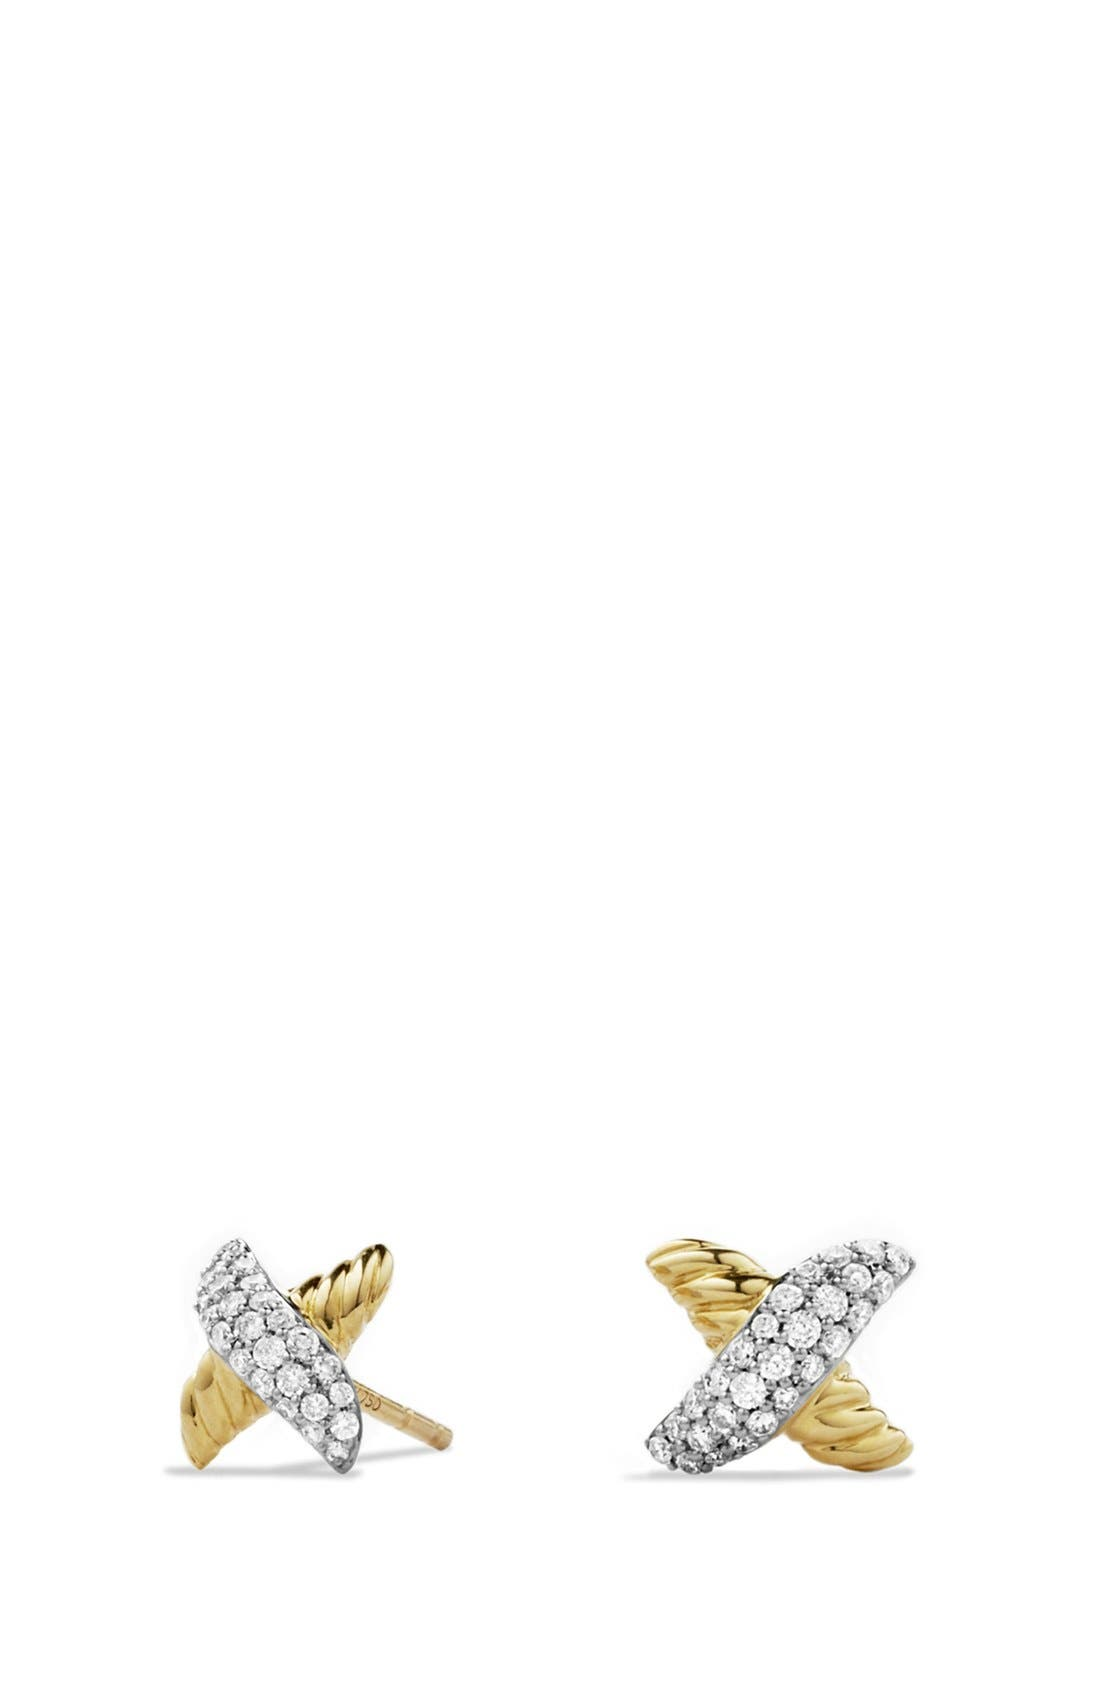 'X' Petite Earrings with Diamonds and Gold,                         Main,                         color, DIAMOND